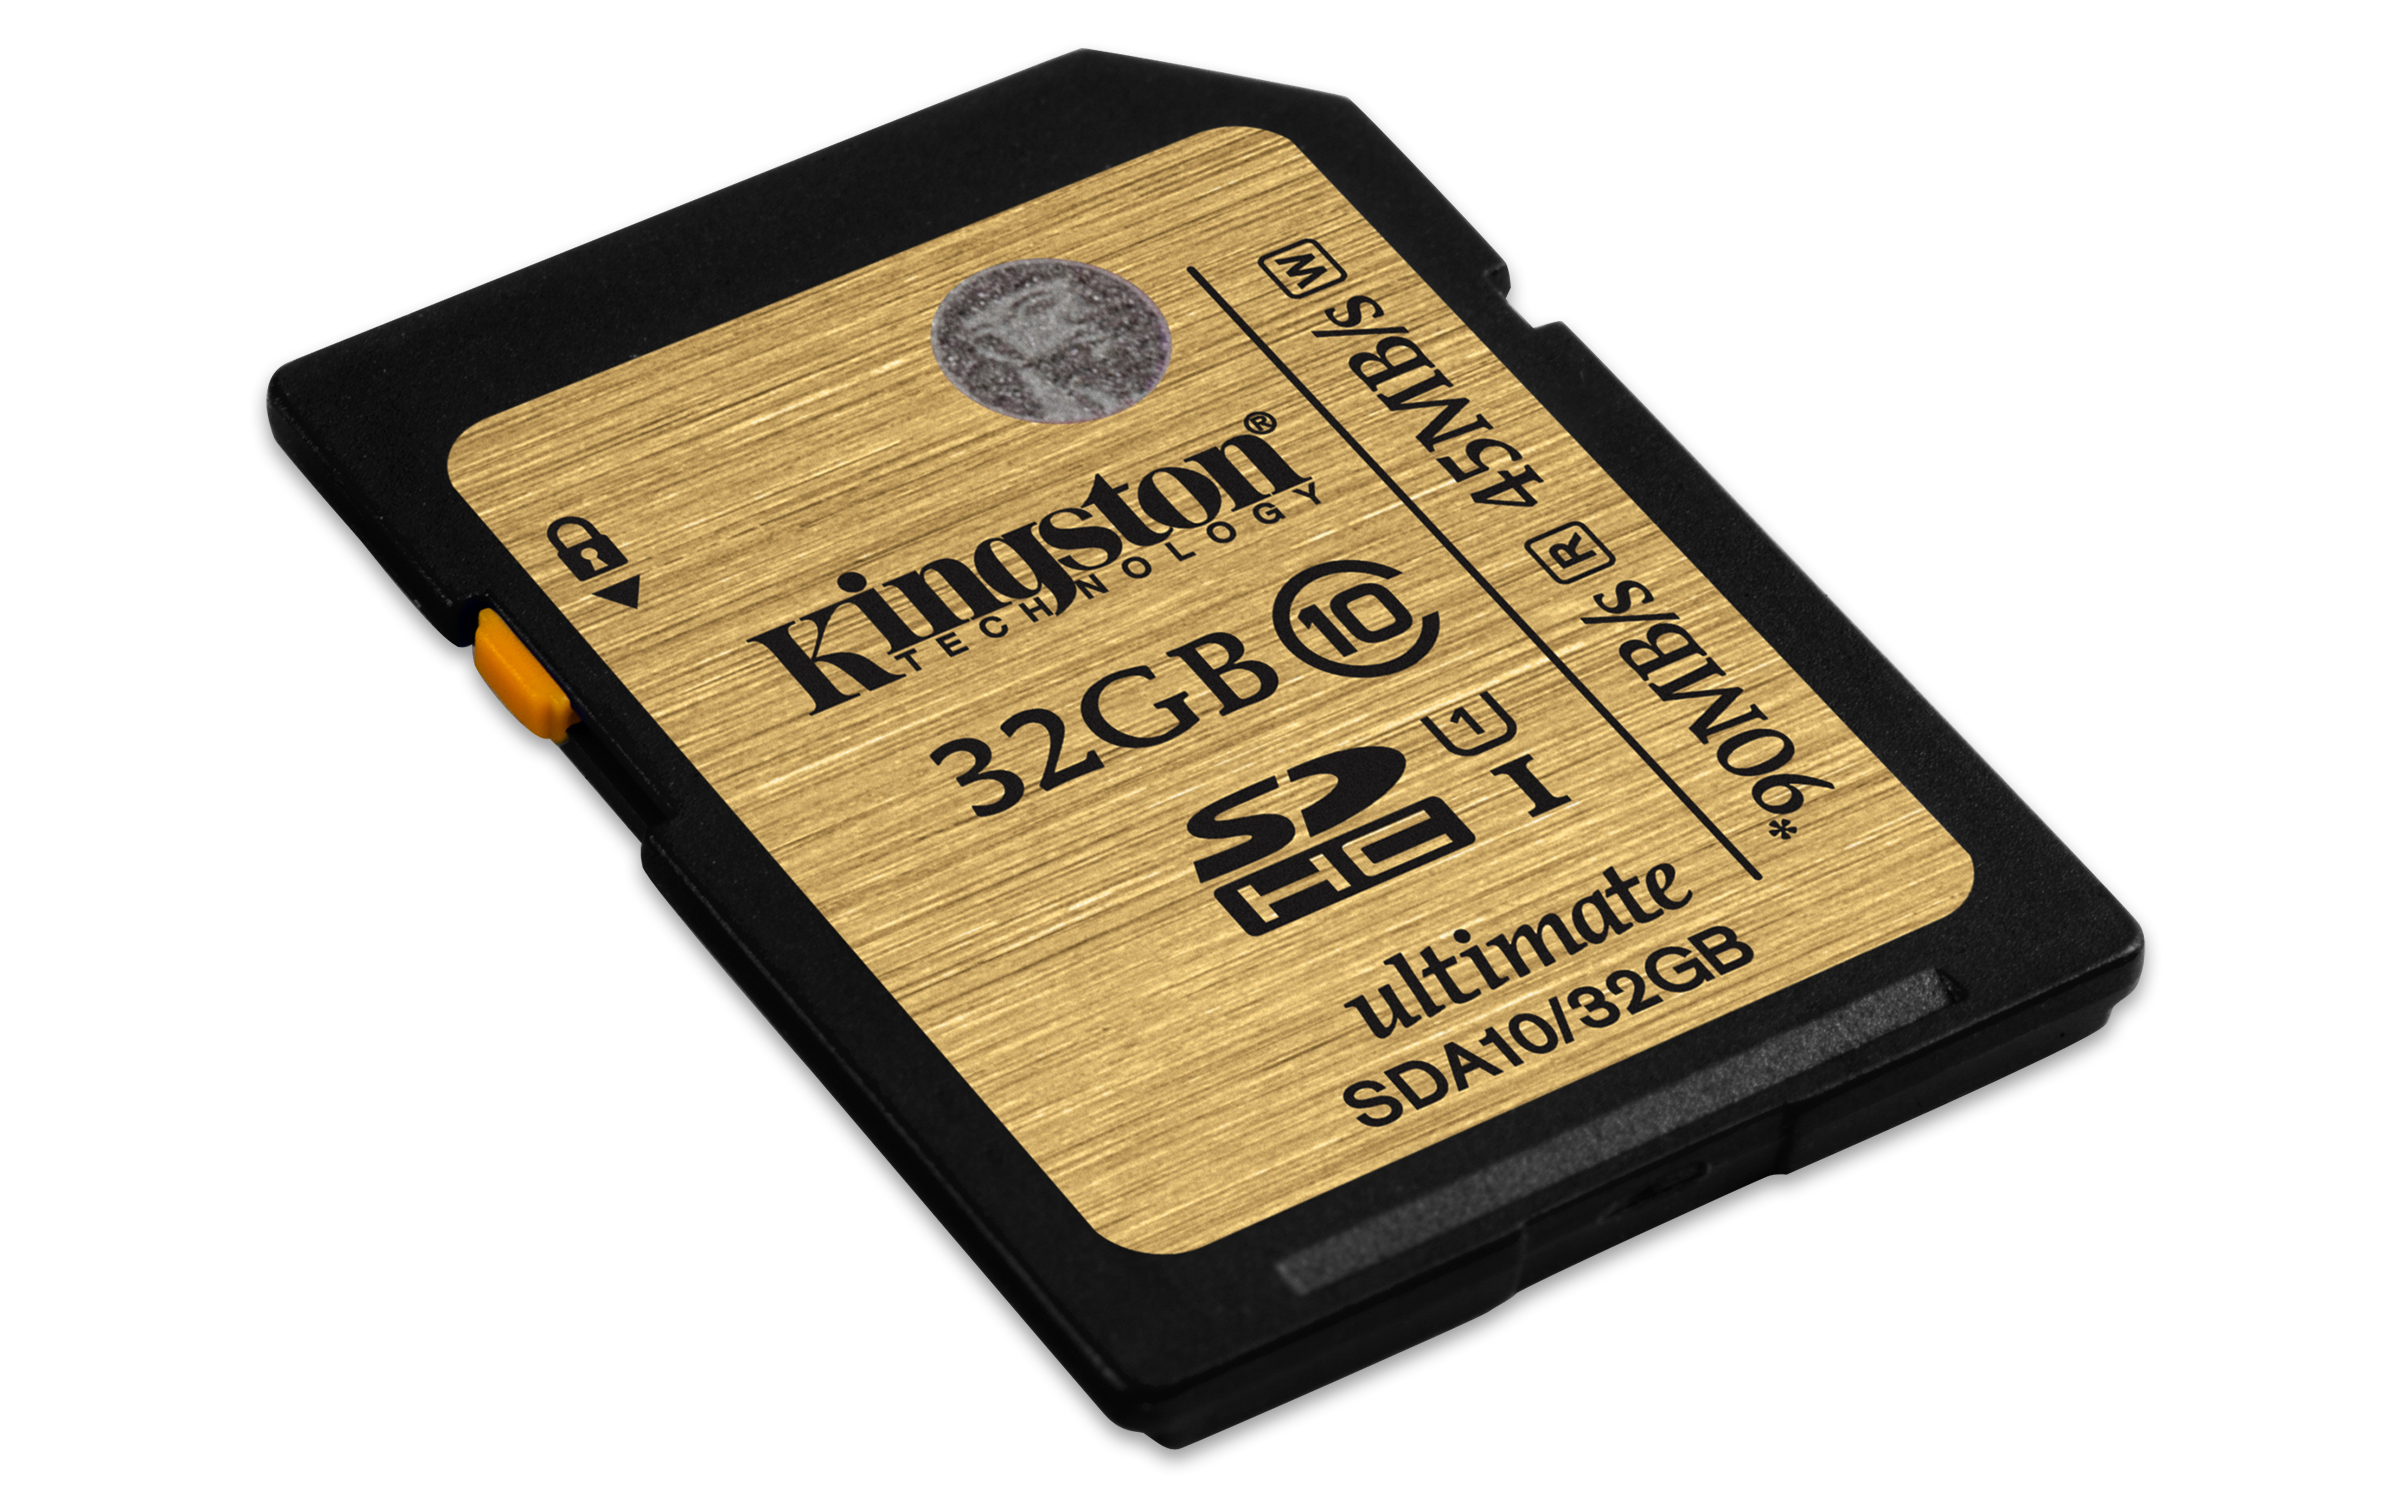 KINGSTON 32GB SDXC Class 10 UHS-I 90MB/s R, 45MB/s W Flash Card